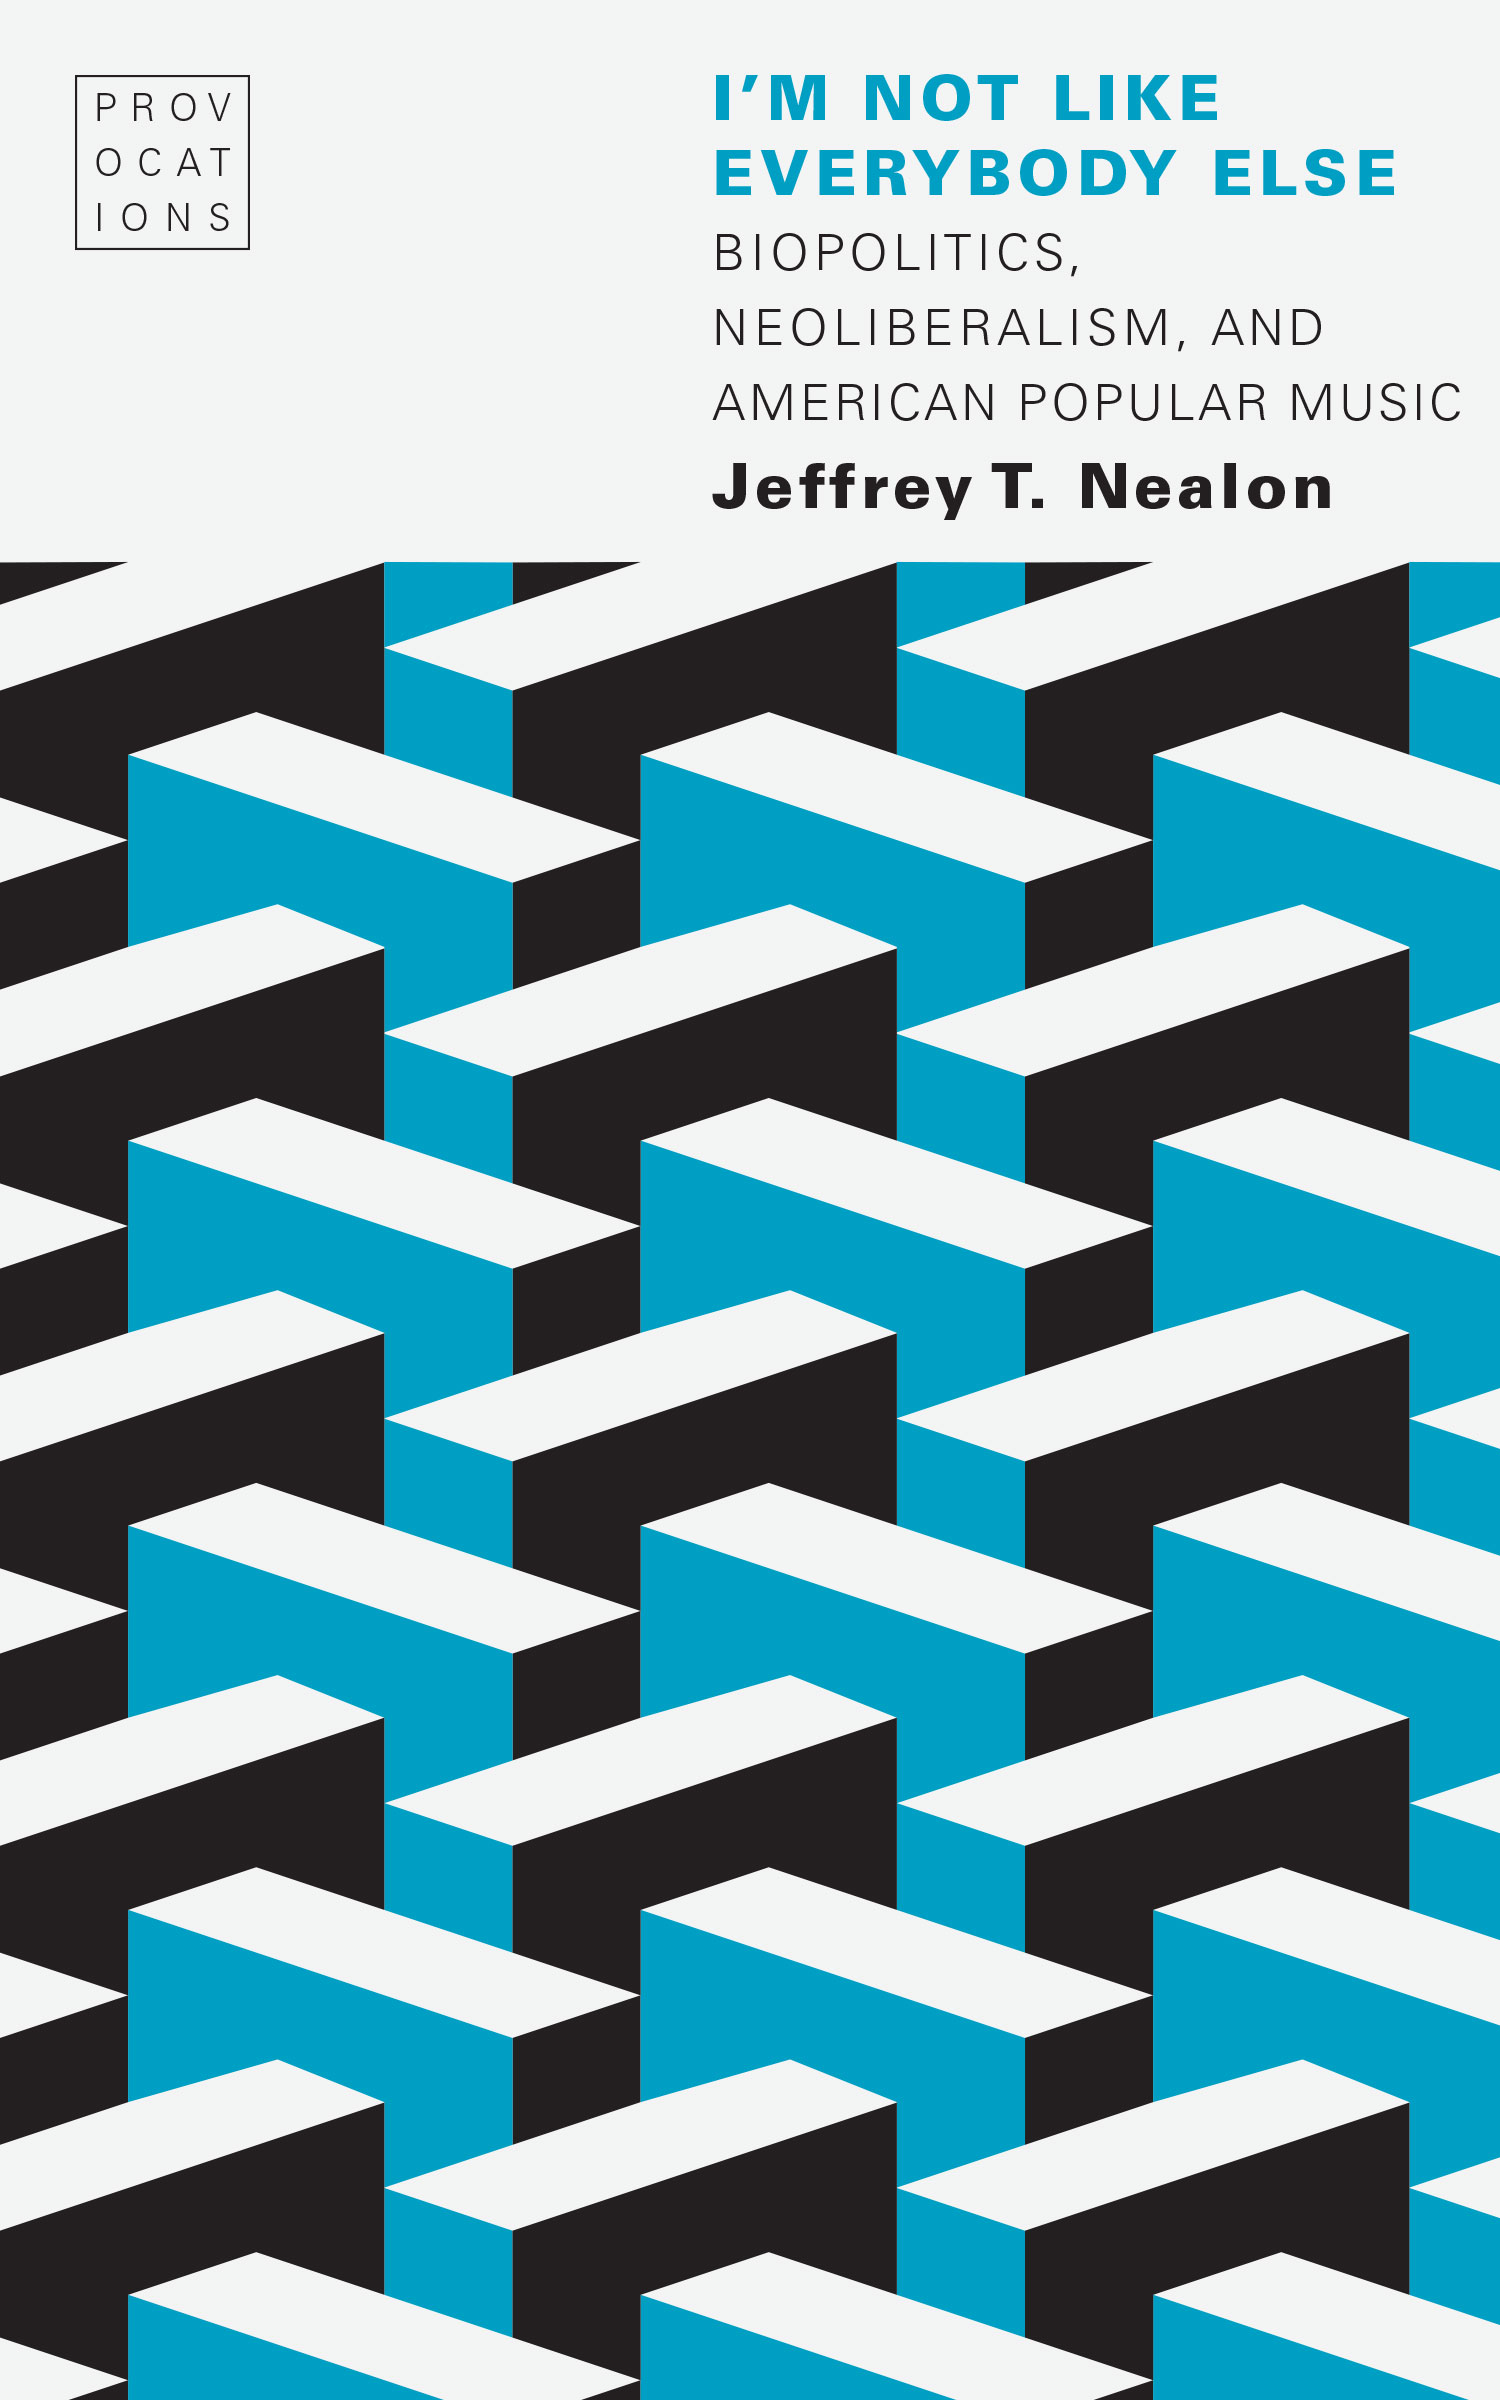 Cover of I'M NOT LIKE EVERYBODY ELSE by Jeffrey T. Nealon